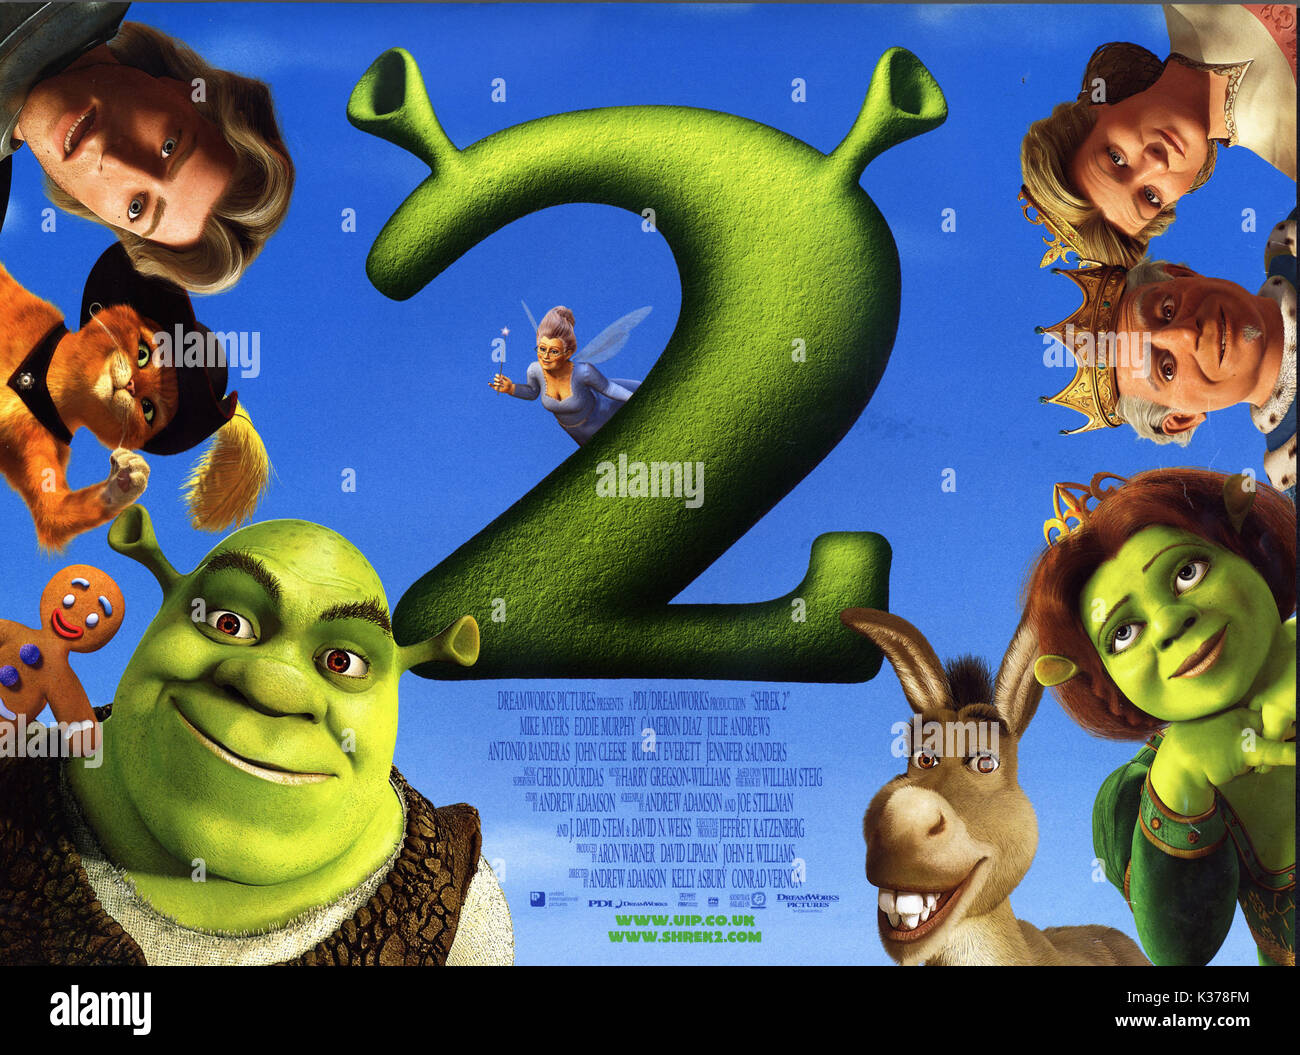 Shrek 2 High Resolution Stock Photography And Images Alamy